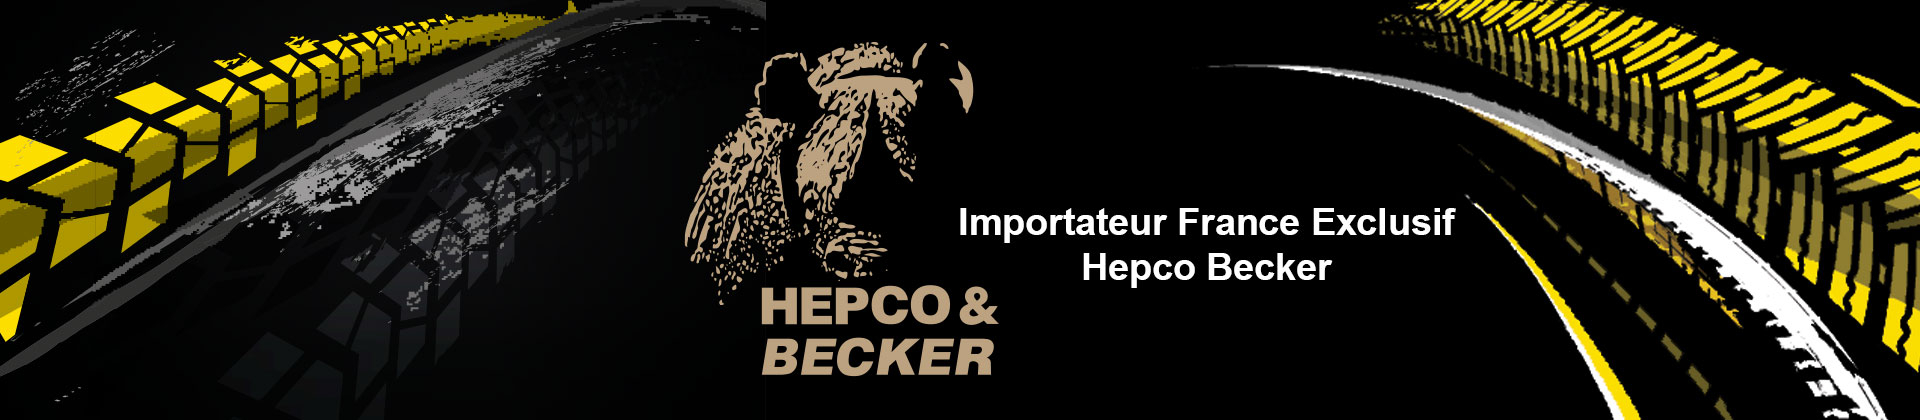 Bagagerie Hepco-Becker / Krauser